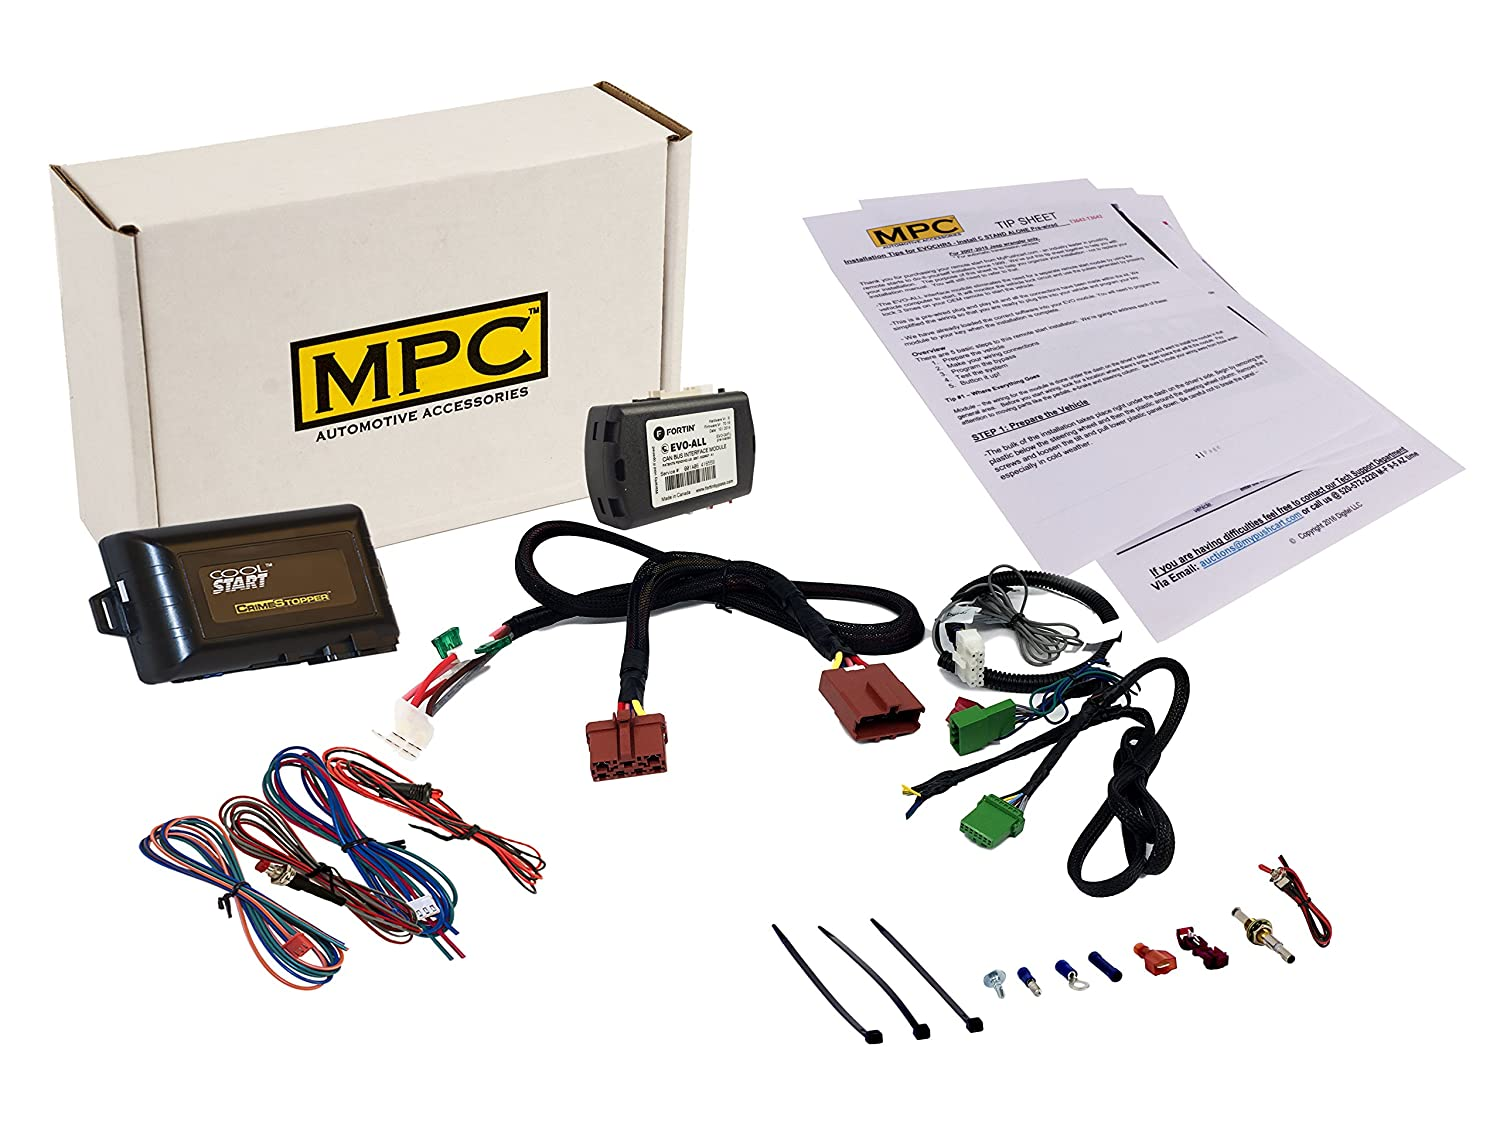 Mpc Complete Add On Remote Start For Honda Cr V 2007 Starter Wiring Harness 2011 Plug And Play Uses Factory Remotes Automotive